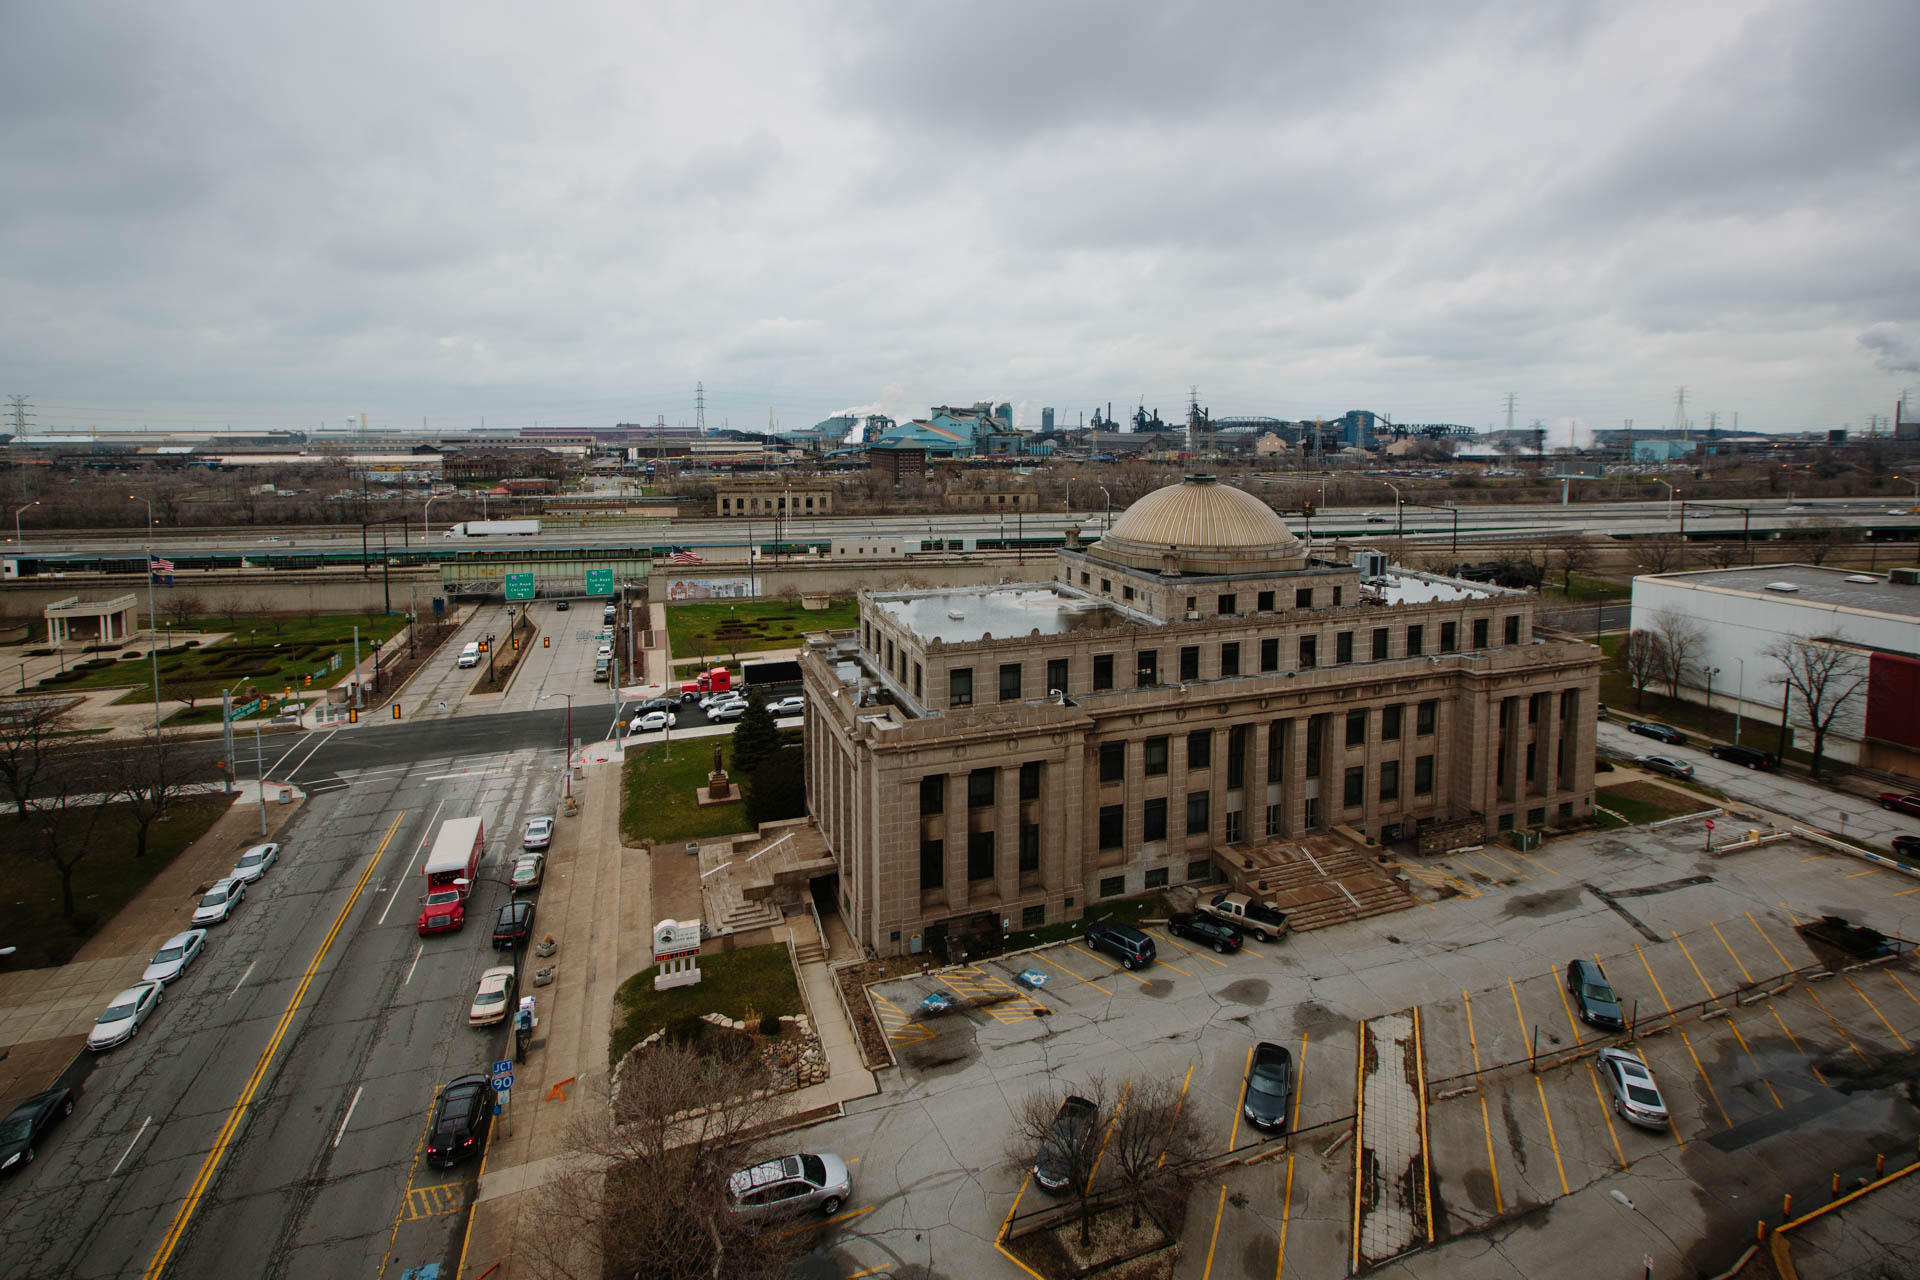 gary-city-hall-us-steel-aerial